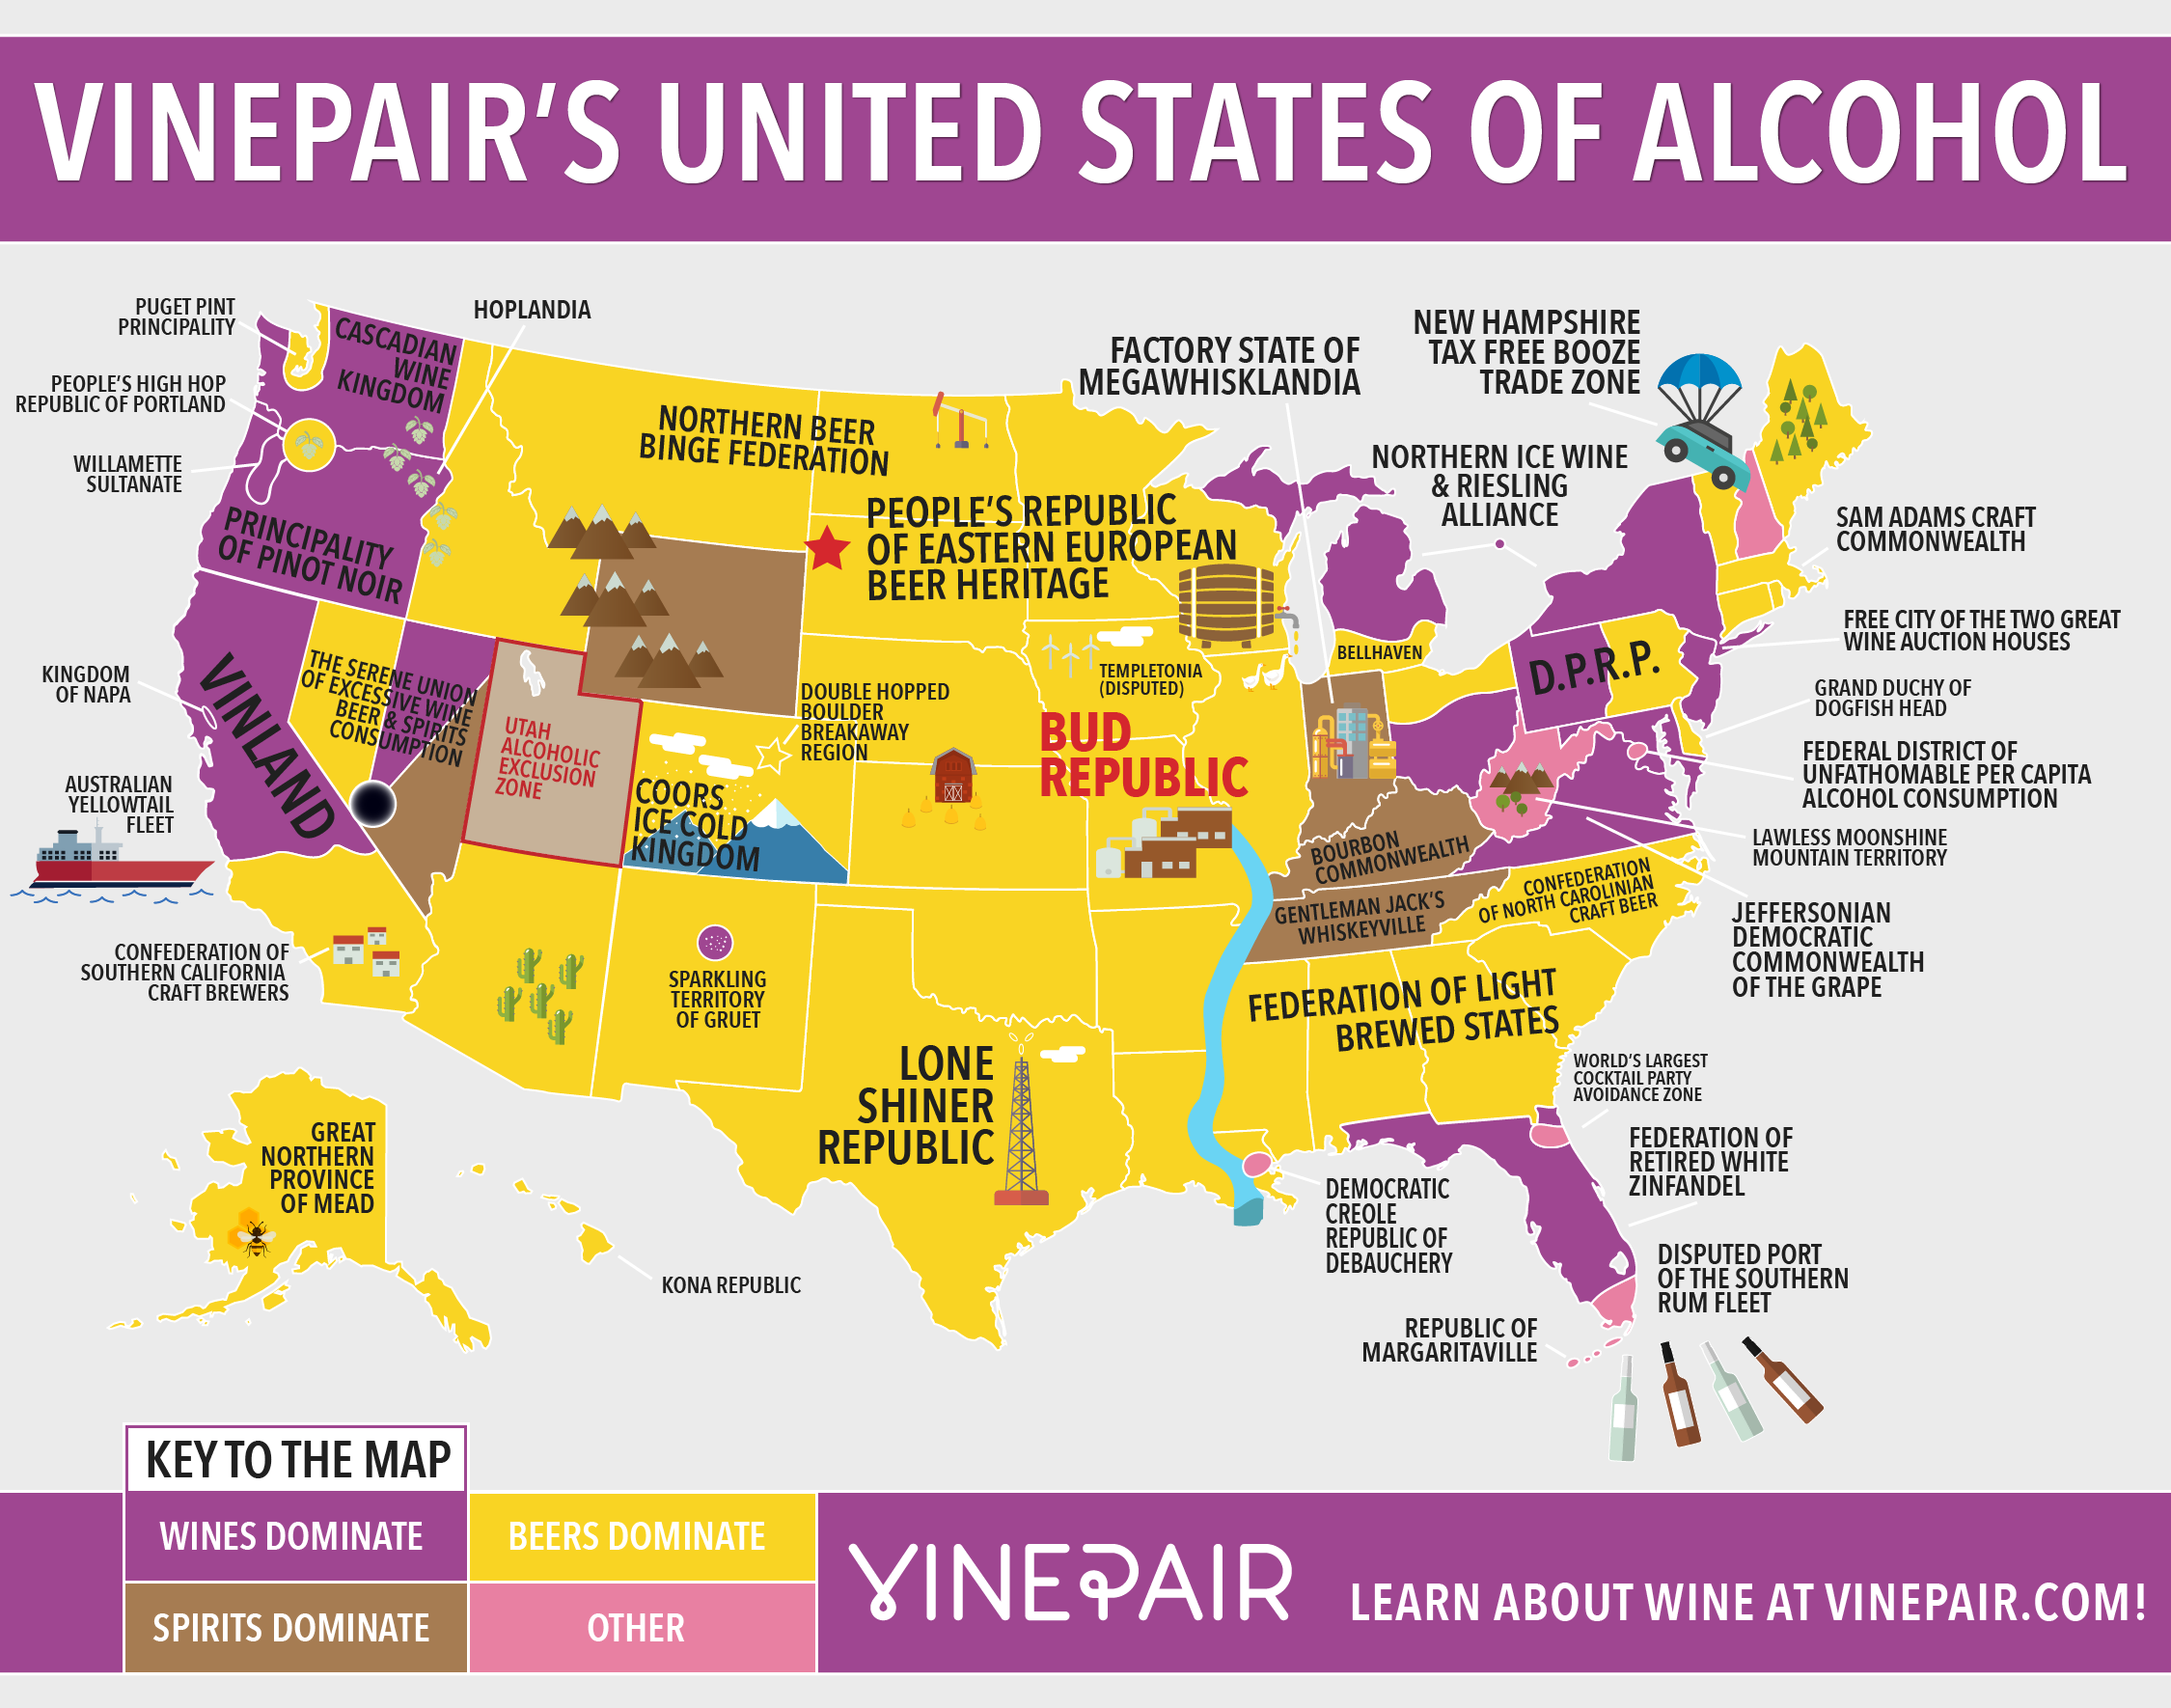 The United States Of Alcohol